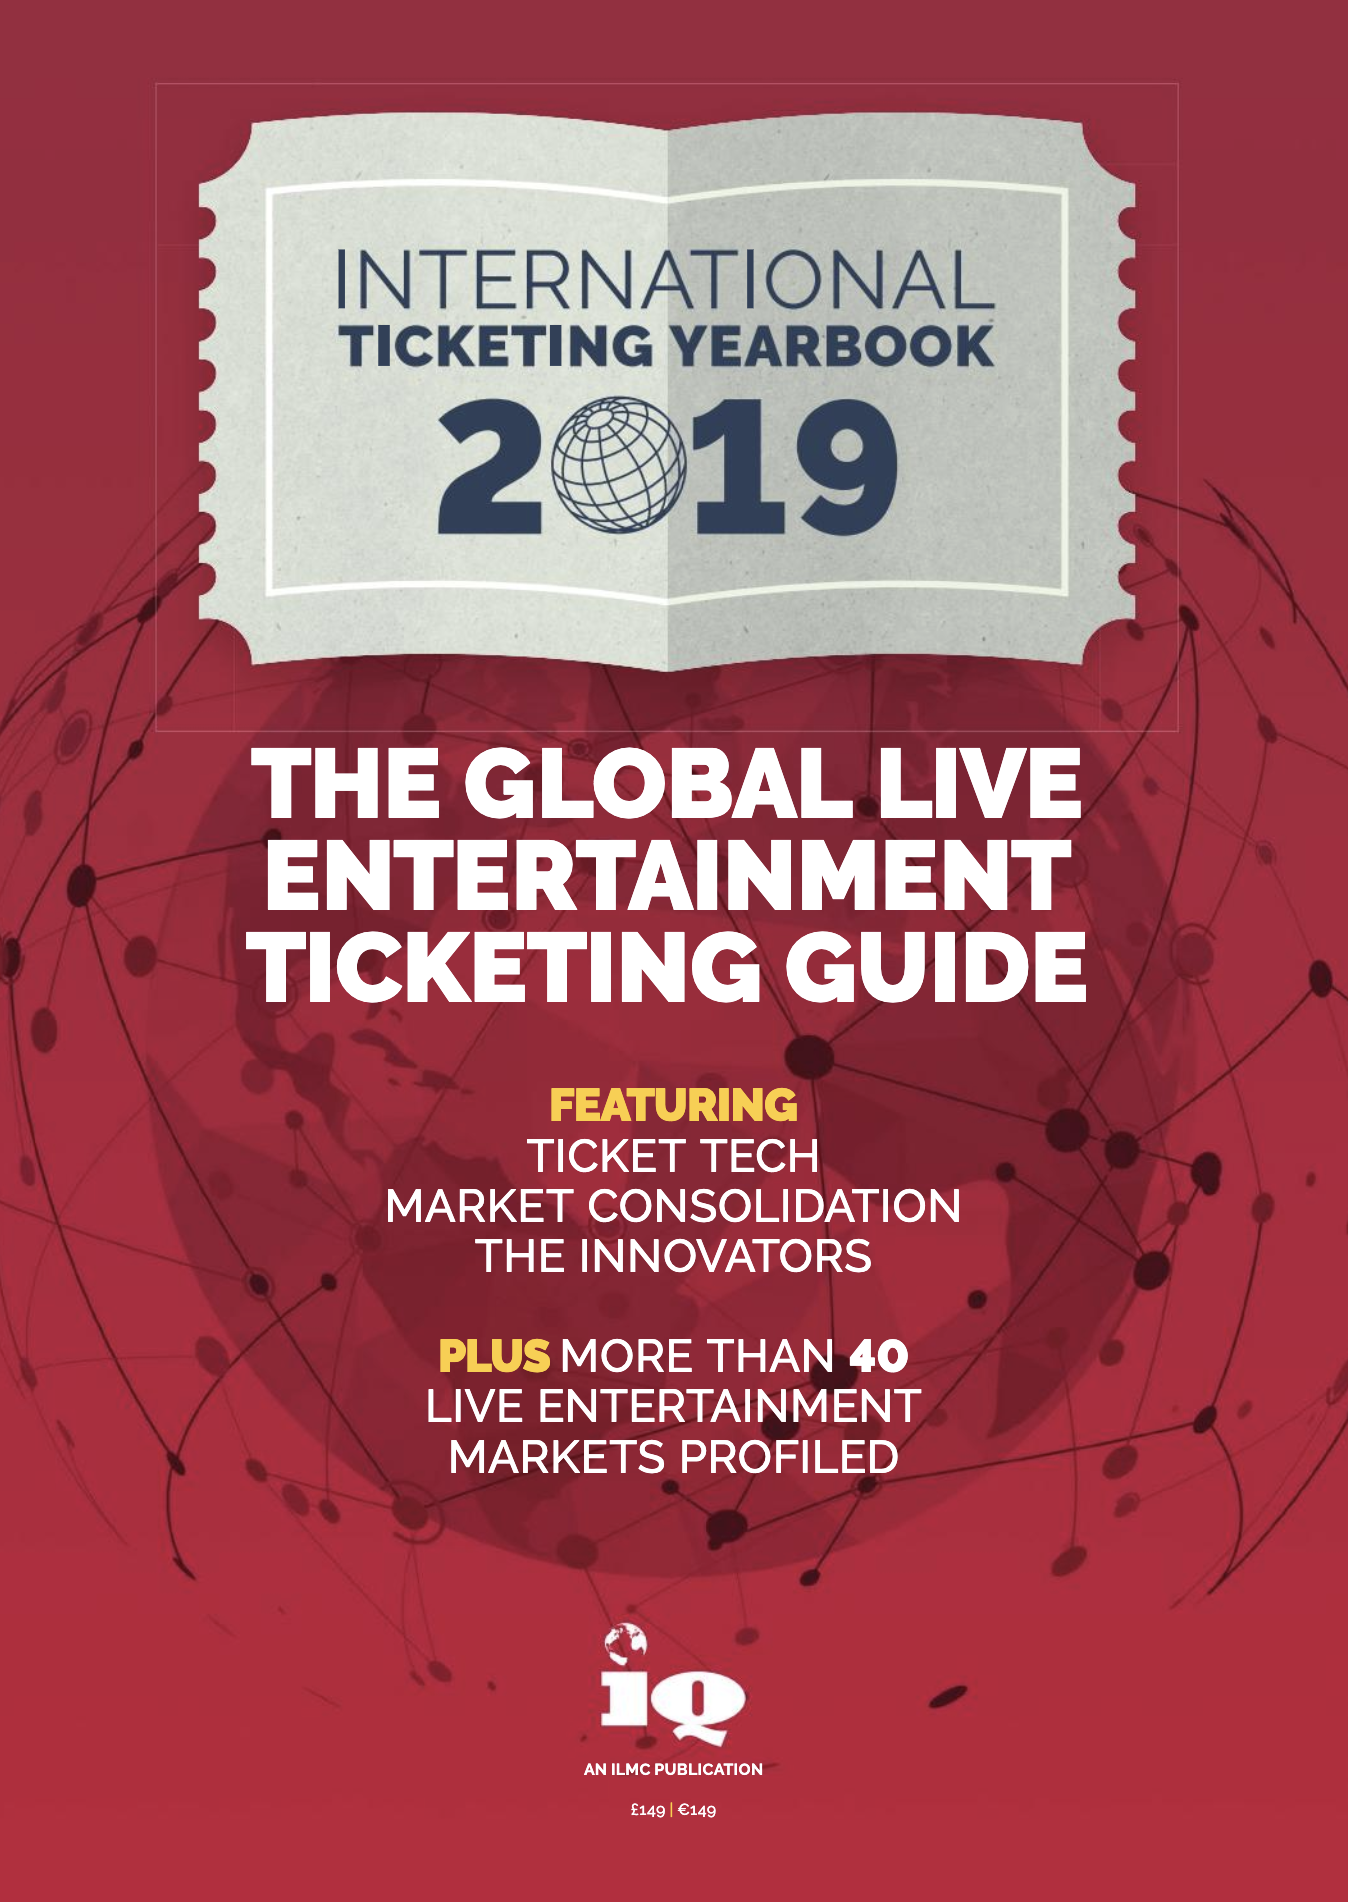 International Ticketing Yearbook cover.png